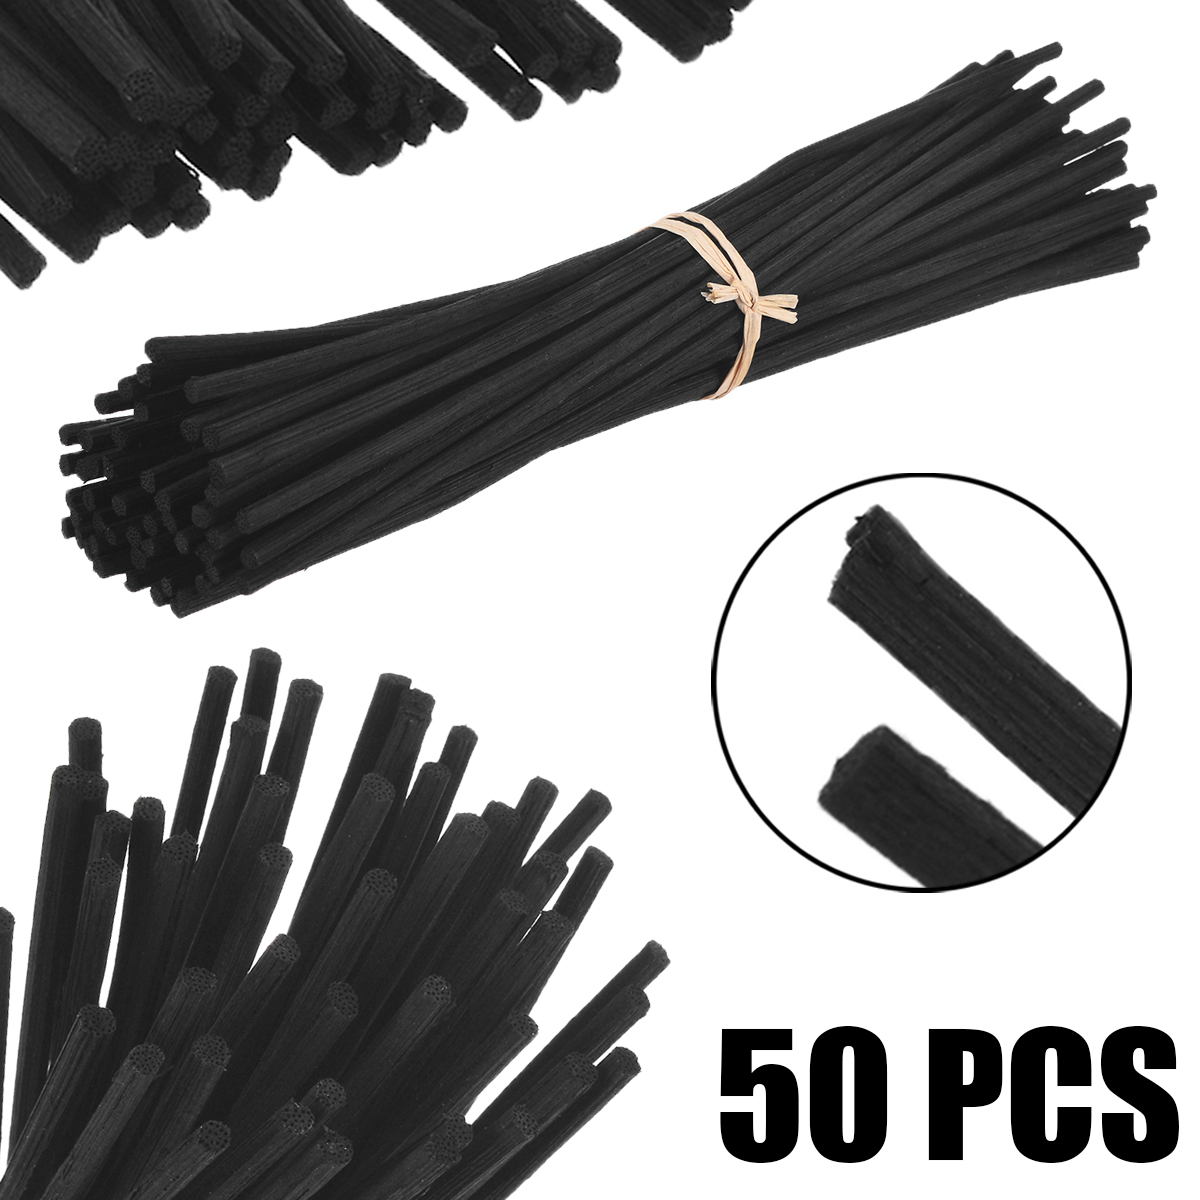 50Pcs Black Fragrance Stick Oil Diffuser Premium Rattan Reed Replacement Stick For Home Decor Set